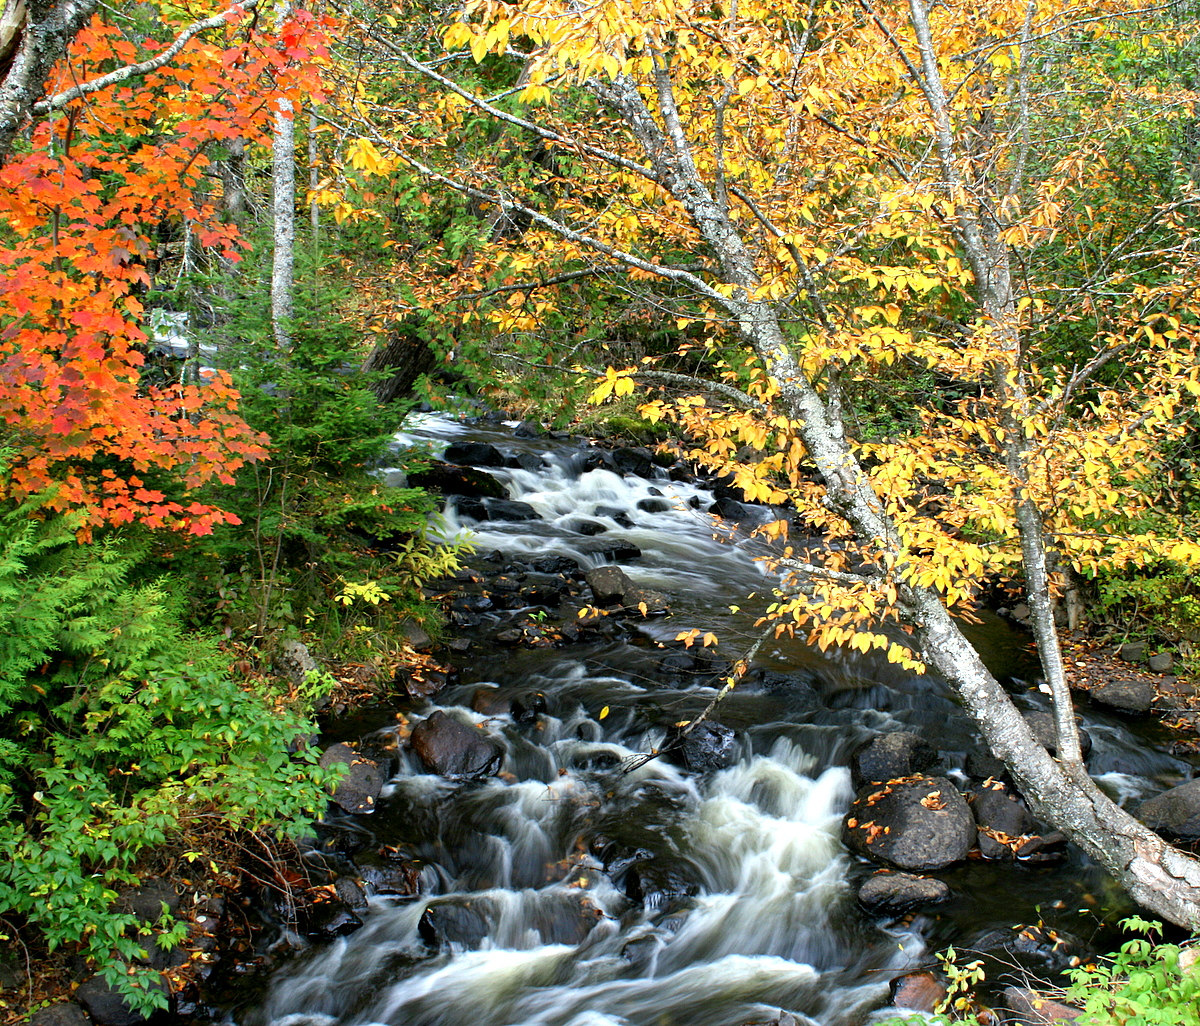 river flowing through the fall colors author plus pluskwik paul